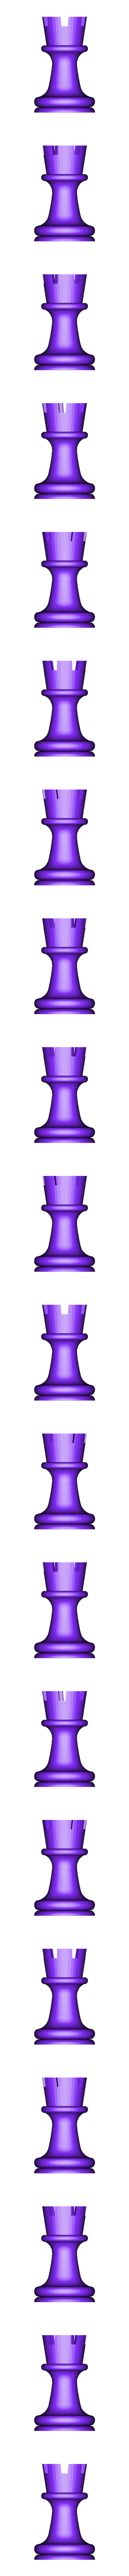 02 torre.STL Download STL file Classical chess • 3D printing object, LuisCrown